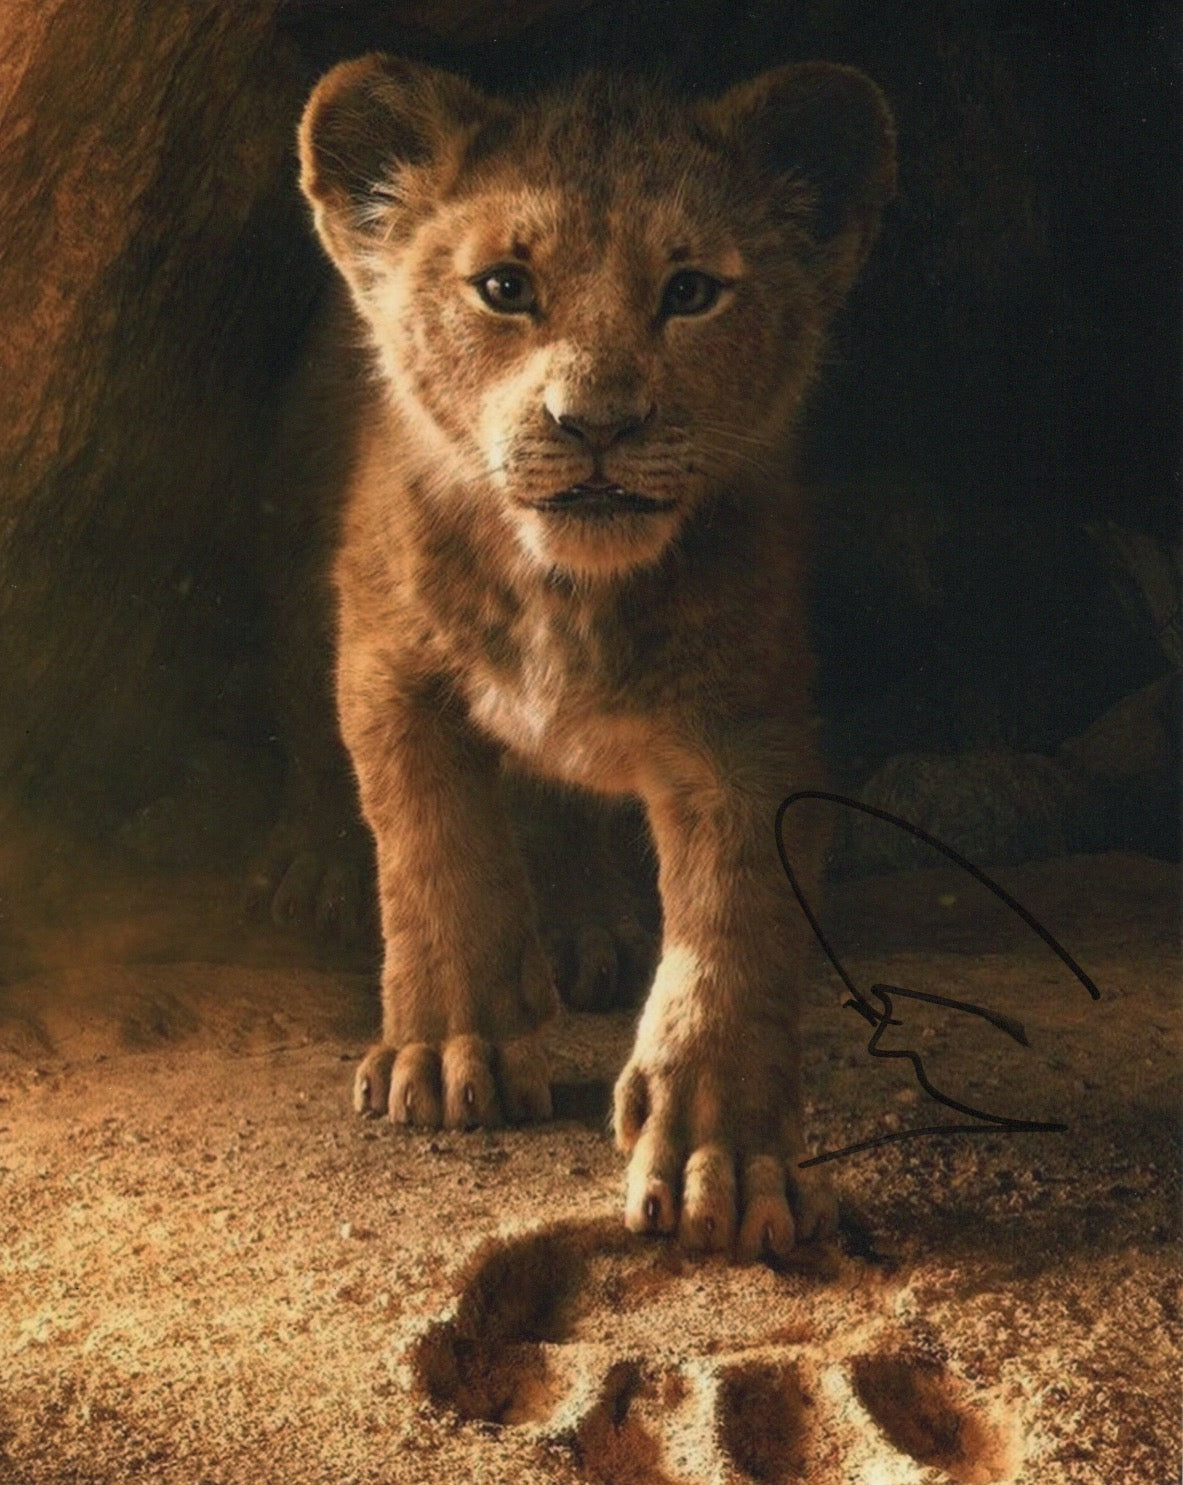 Chiwetel Ejiofor Lion King Disney Autograph 8x10 Photo Signed - Outlaw Hobbies Authentic Autographs